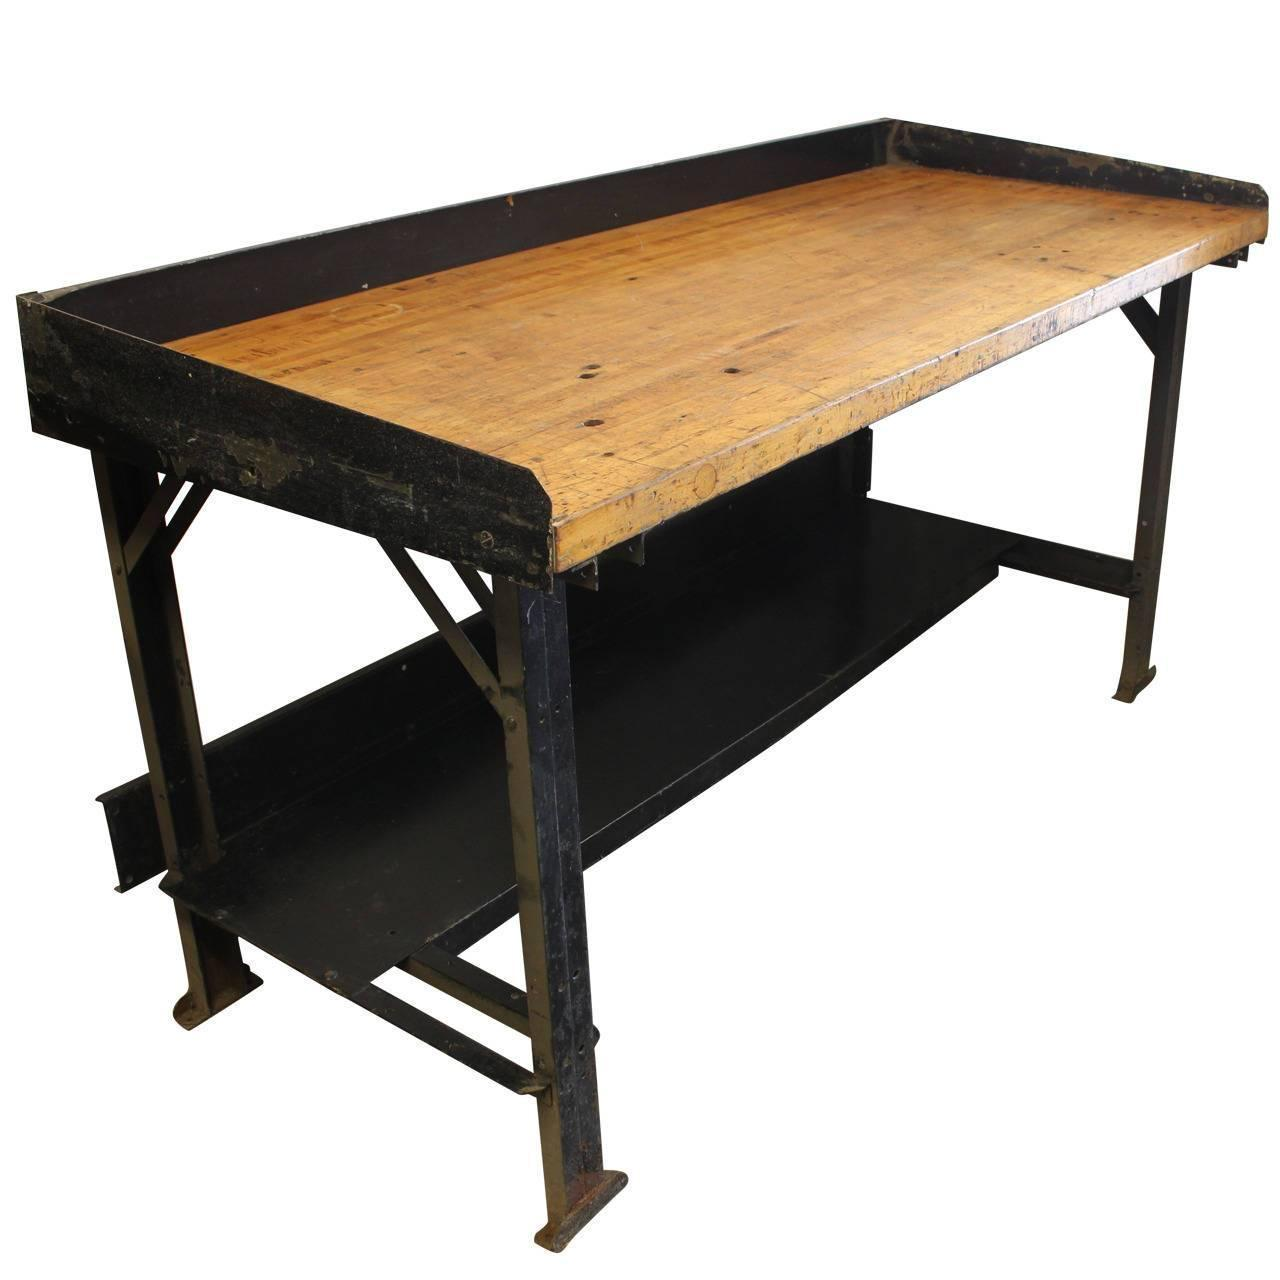 Bench Tables For Sale: Vintage Industrial Work Table For Sale At 1stdibs